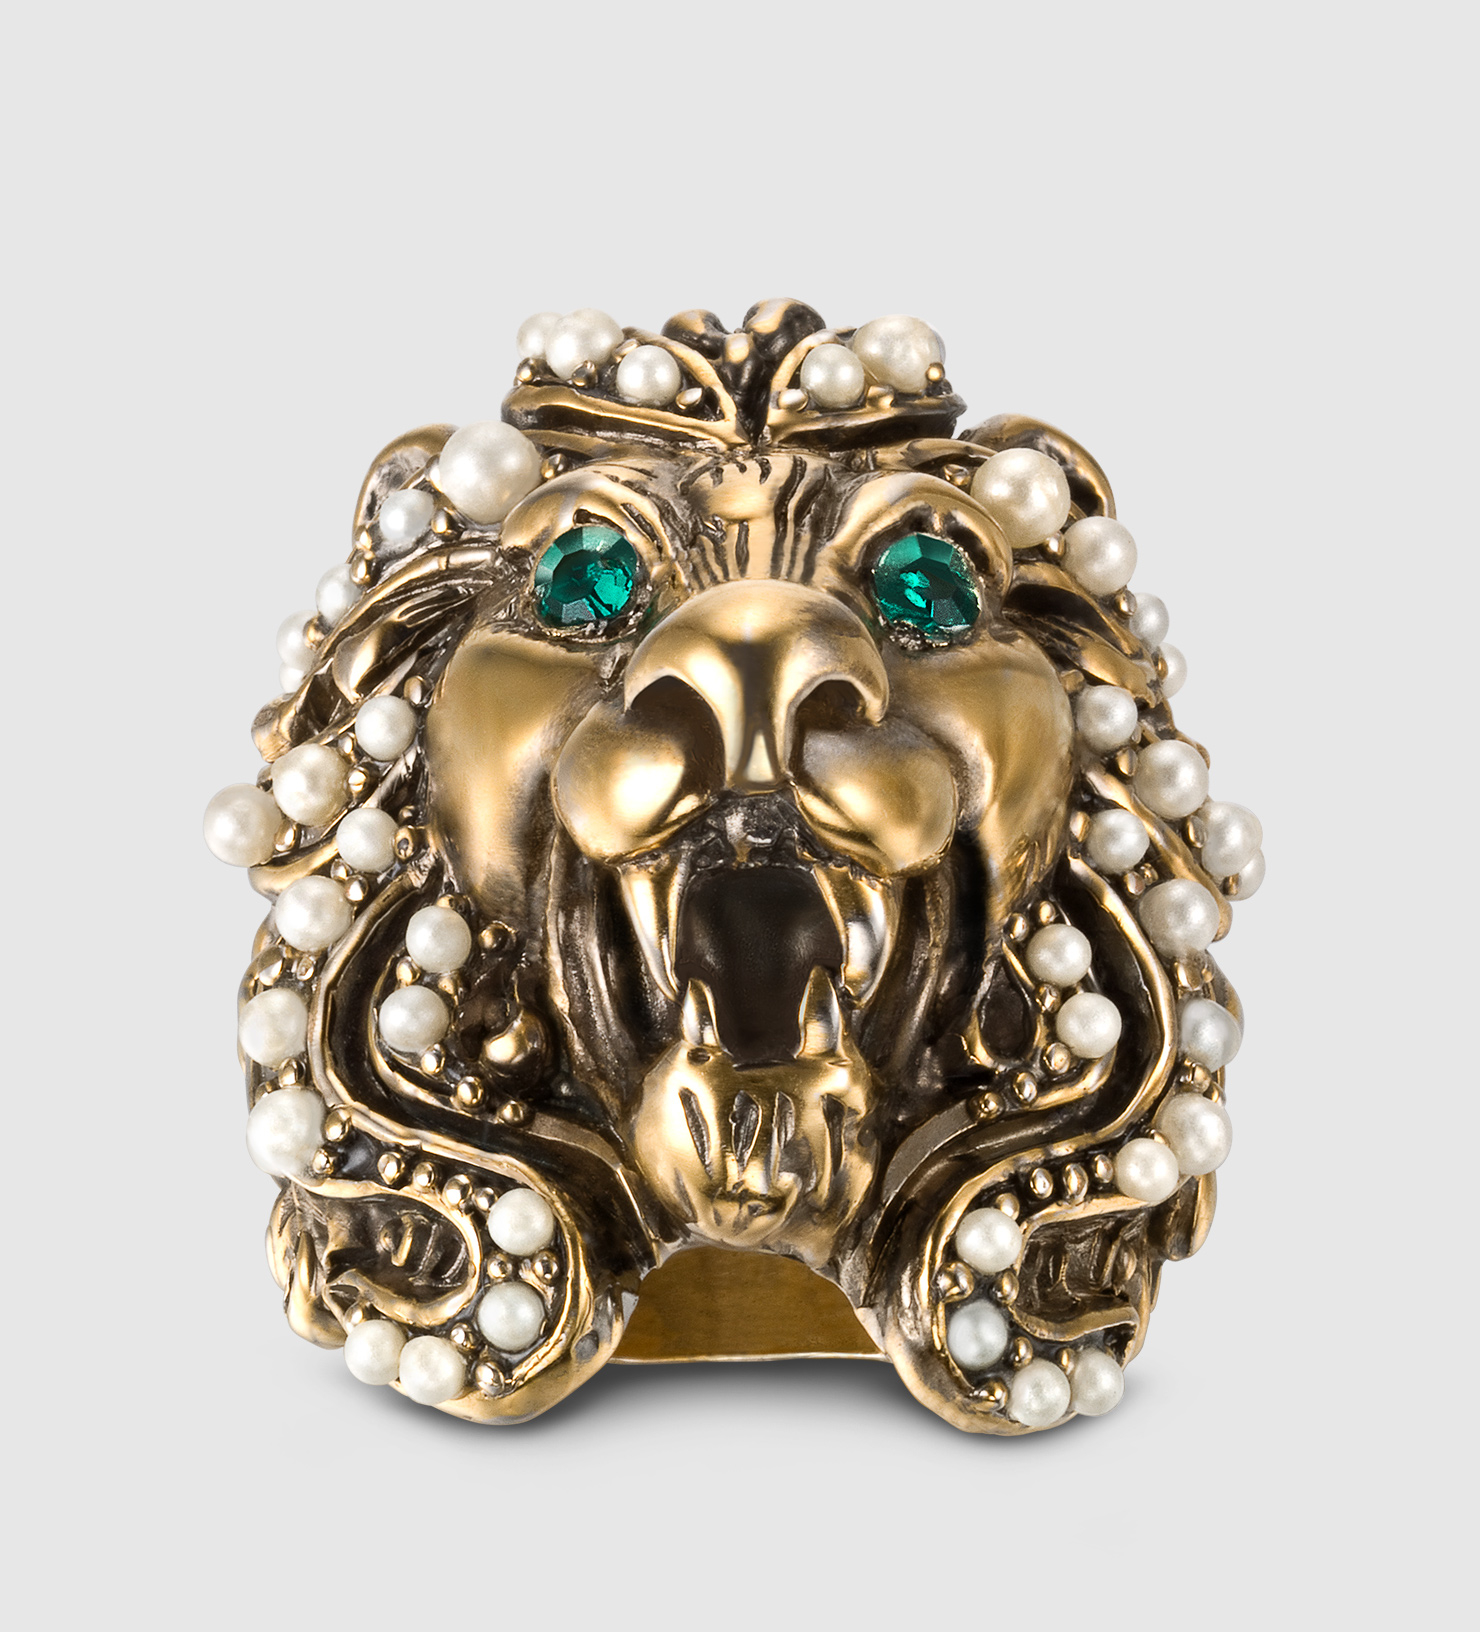 d33027098380d7 Lyst - Gucci Lion Head Ring With Crystals in Metallic